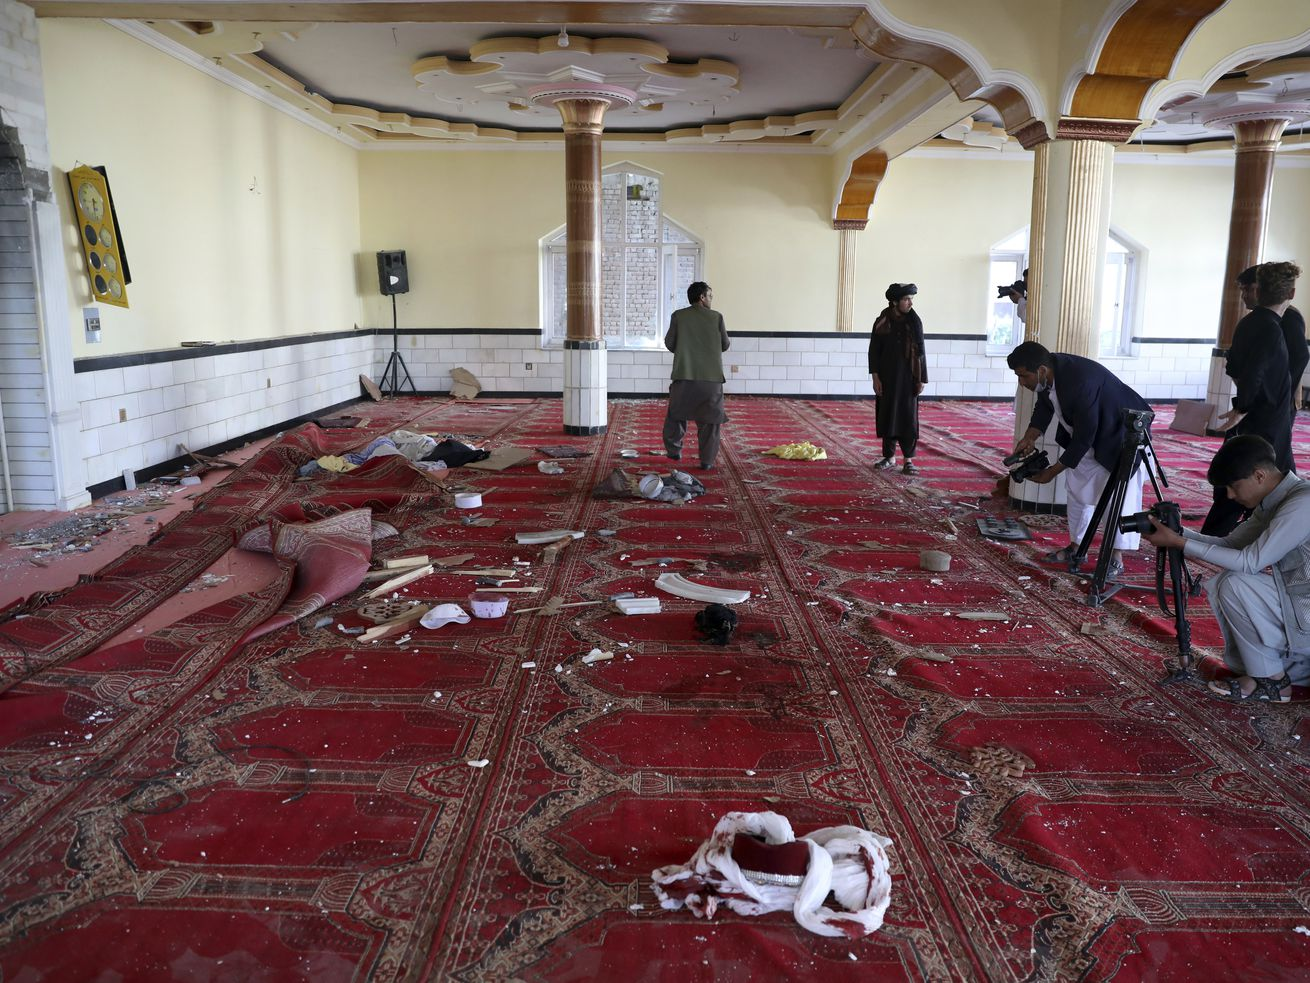 Afghan journalist take photos and film inside a mosque after a bomb explosion in Shakar Dara district of Kabul, Afghanistan, Friday, May 14, 2021. A bomb ripped through a mosque in northern Kabul during Friday prayers killing 12 worshippers, Afghan police said.